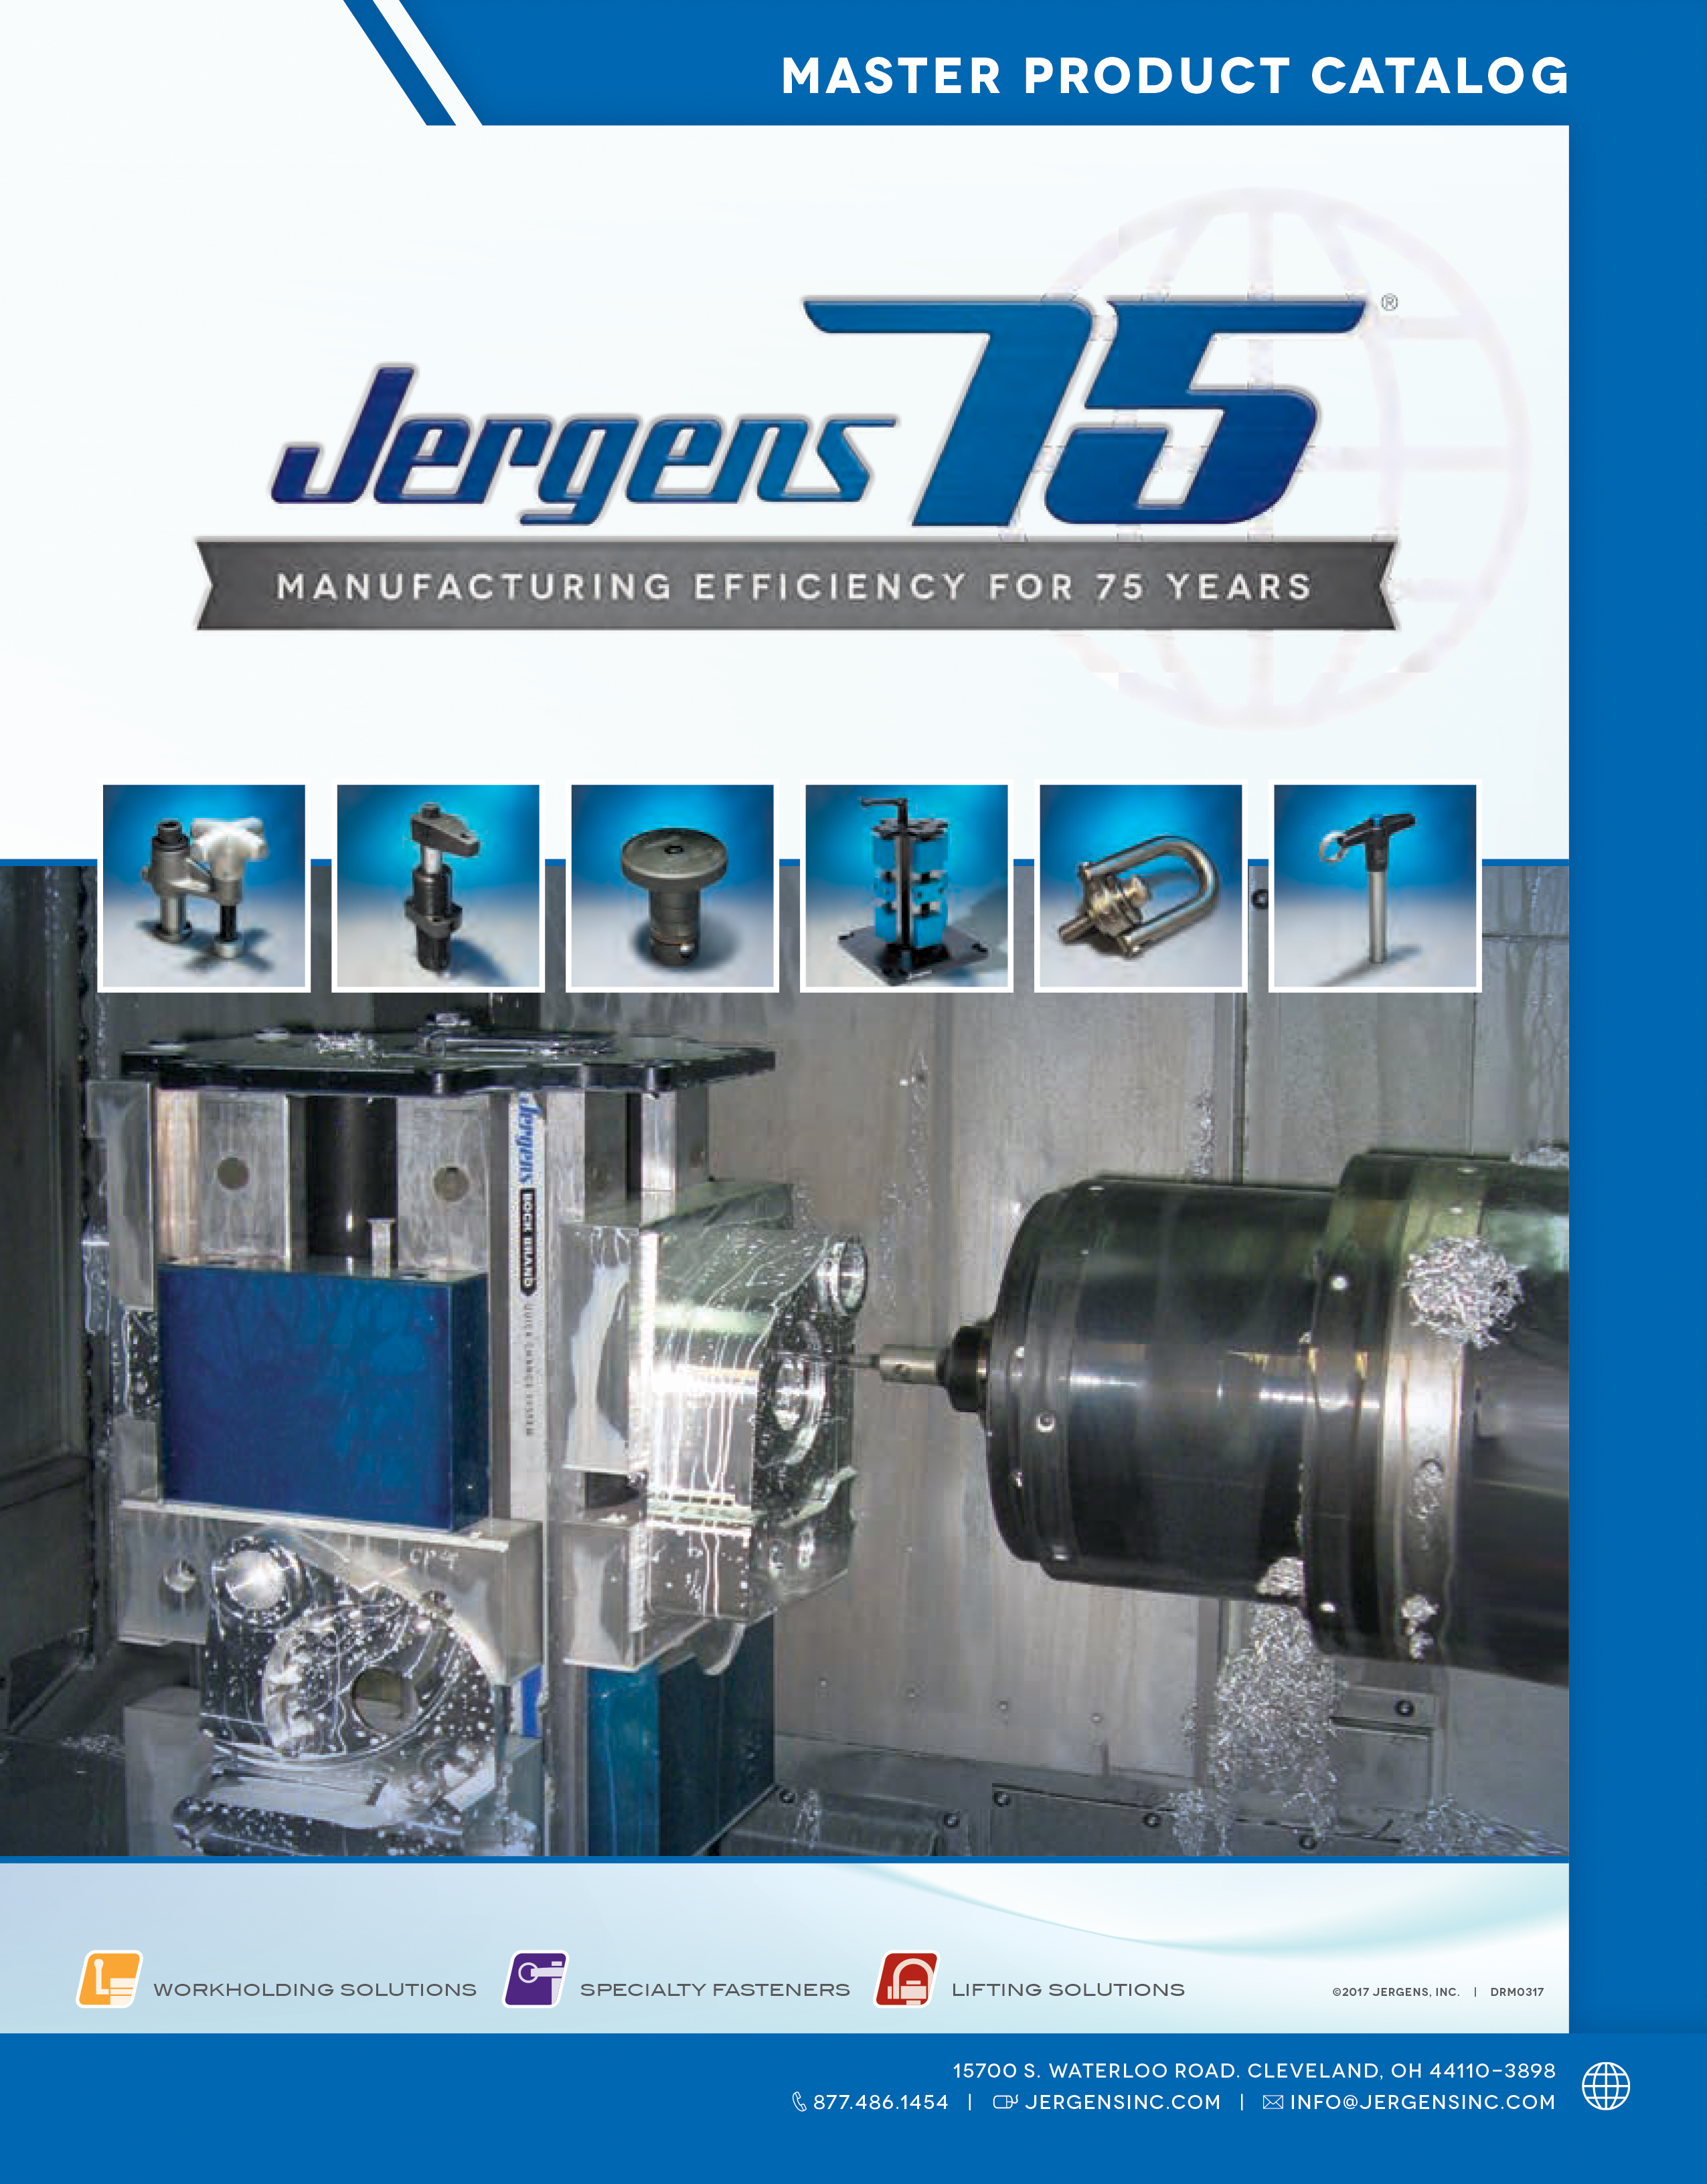 Jergens Master Product Catalog, workholding solutions, lifting solutions and specialty fasteners.